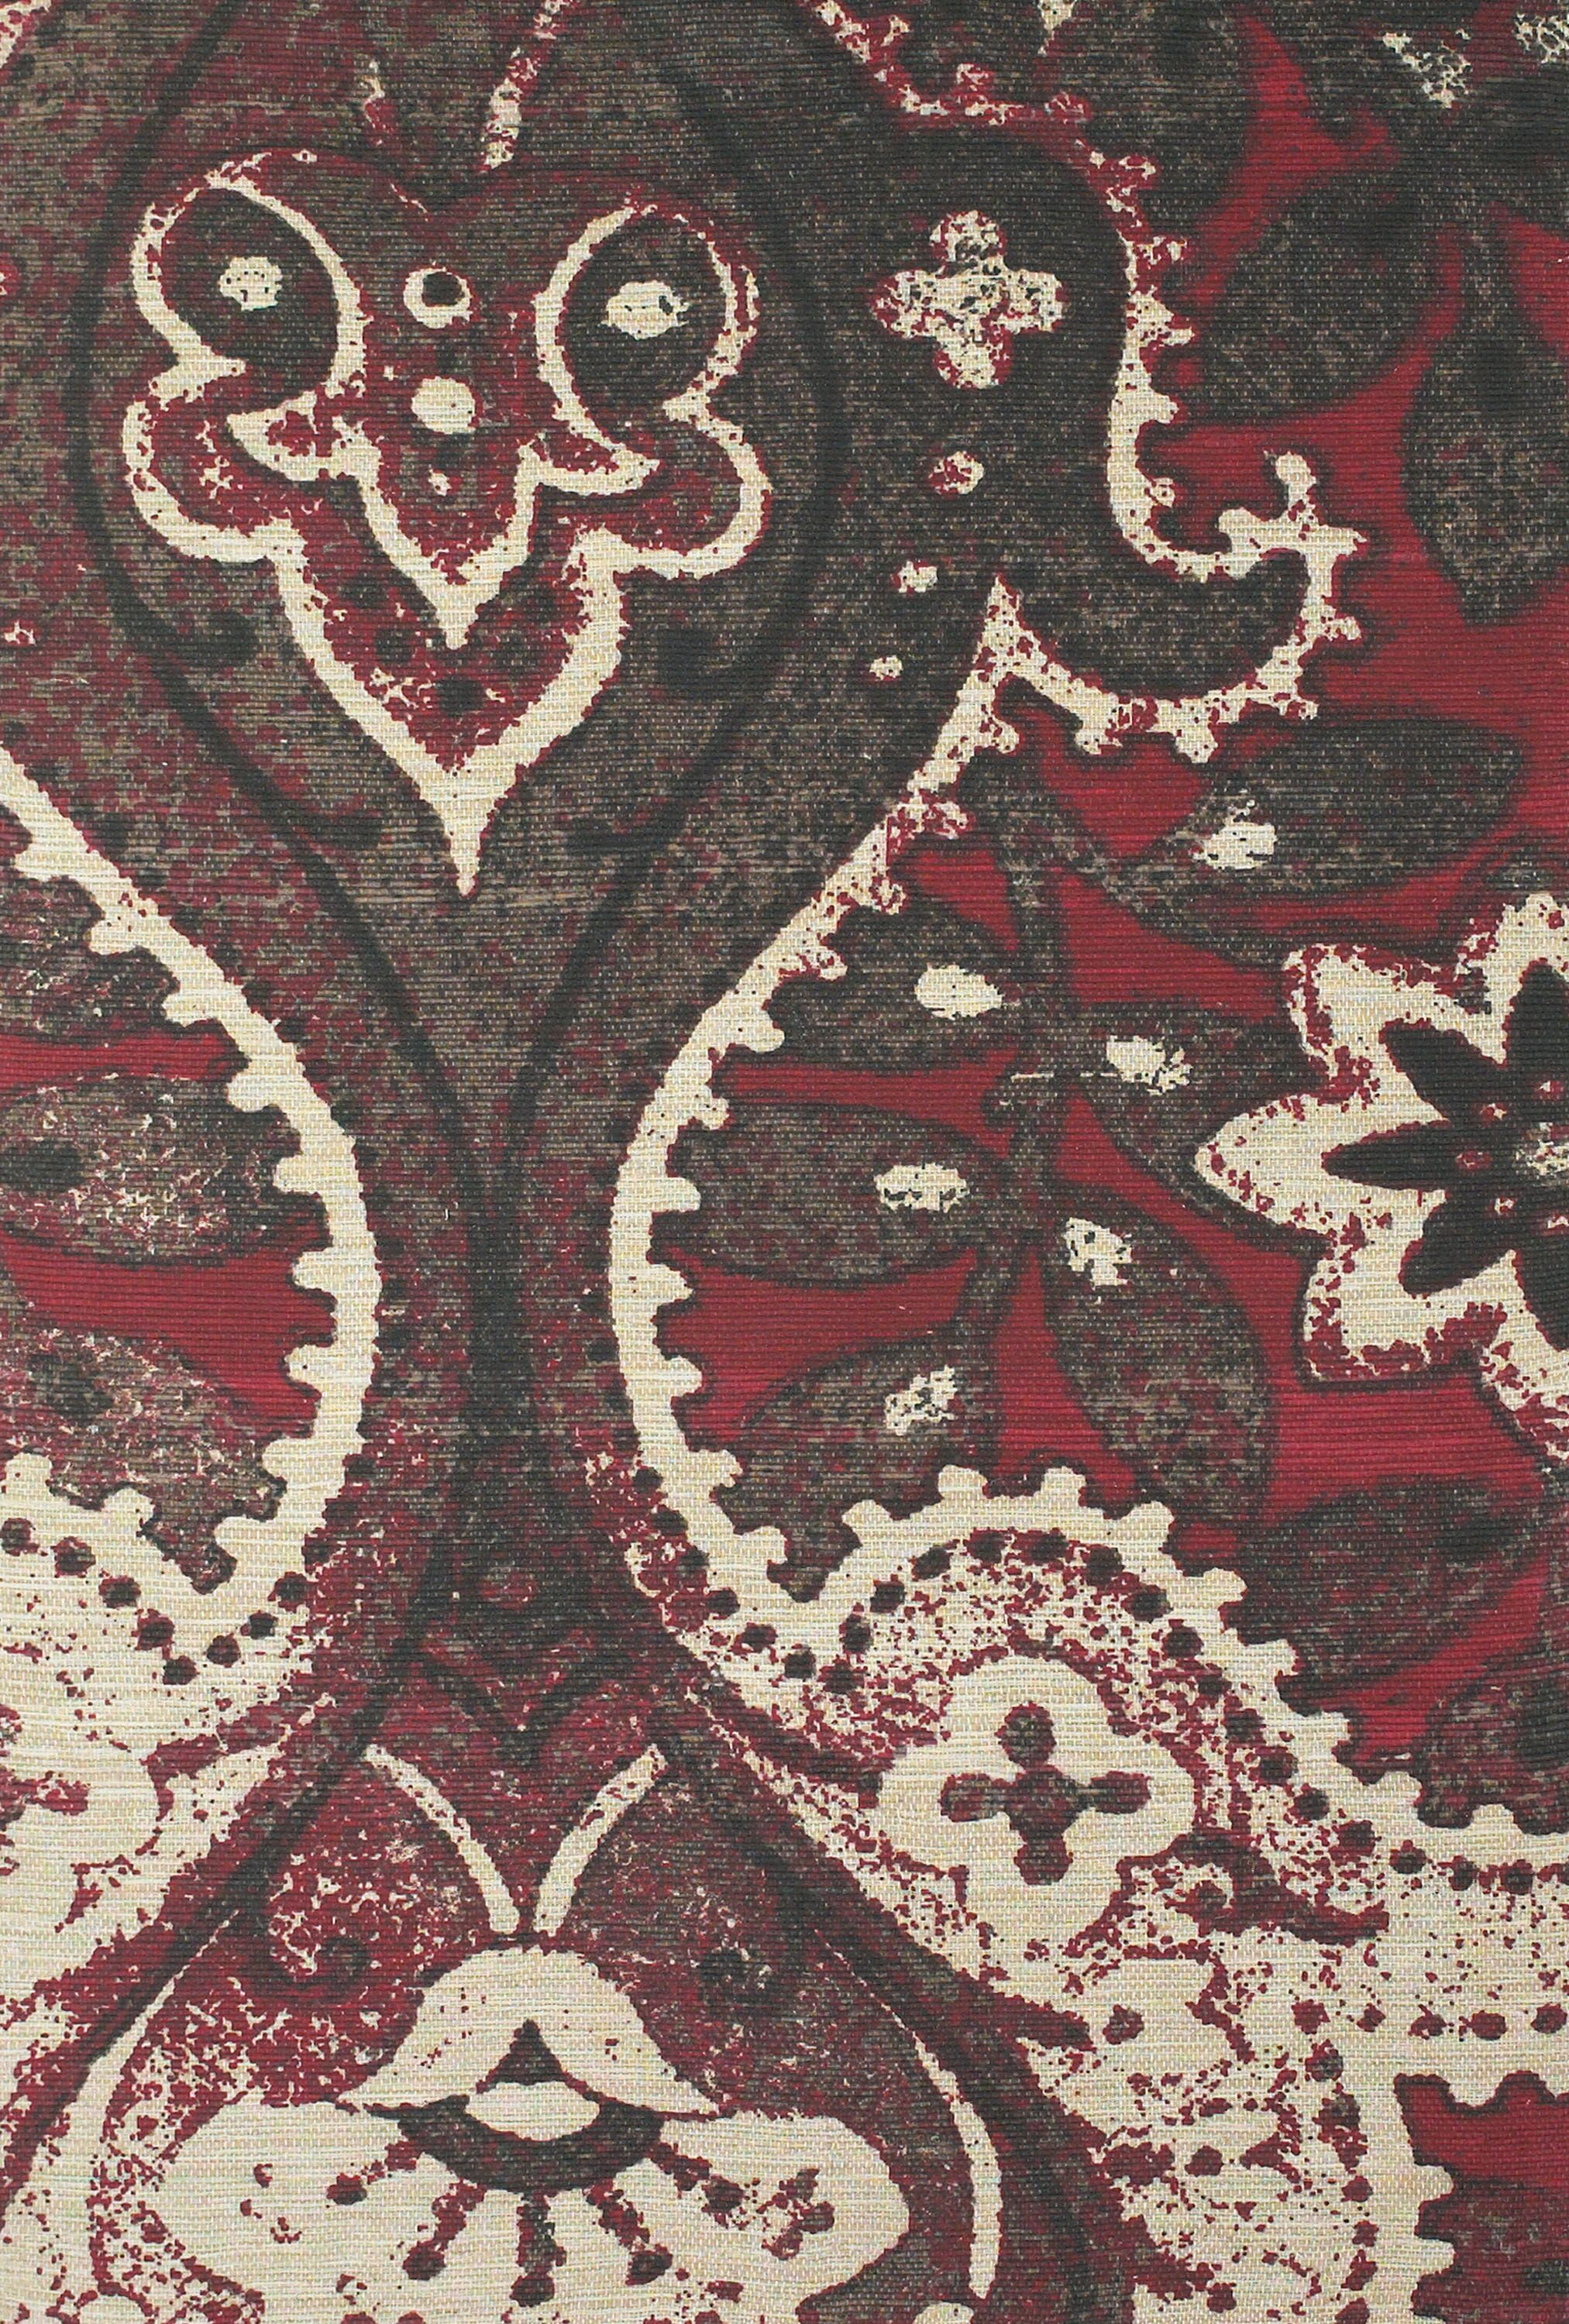 Joshawn Hand-Loomed Black/Red Area Rug Rug Size: Rectangle 5' x 8'